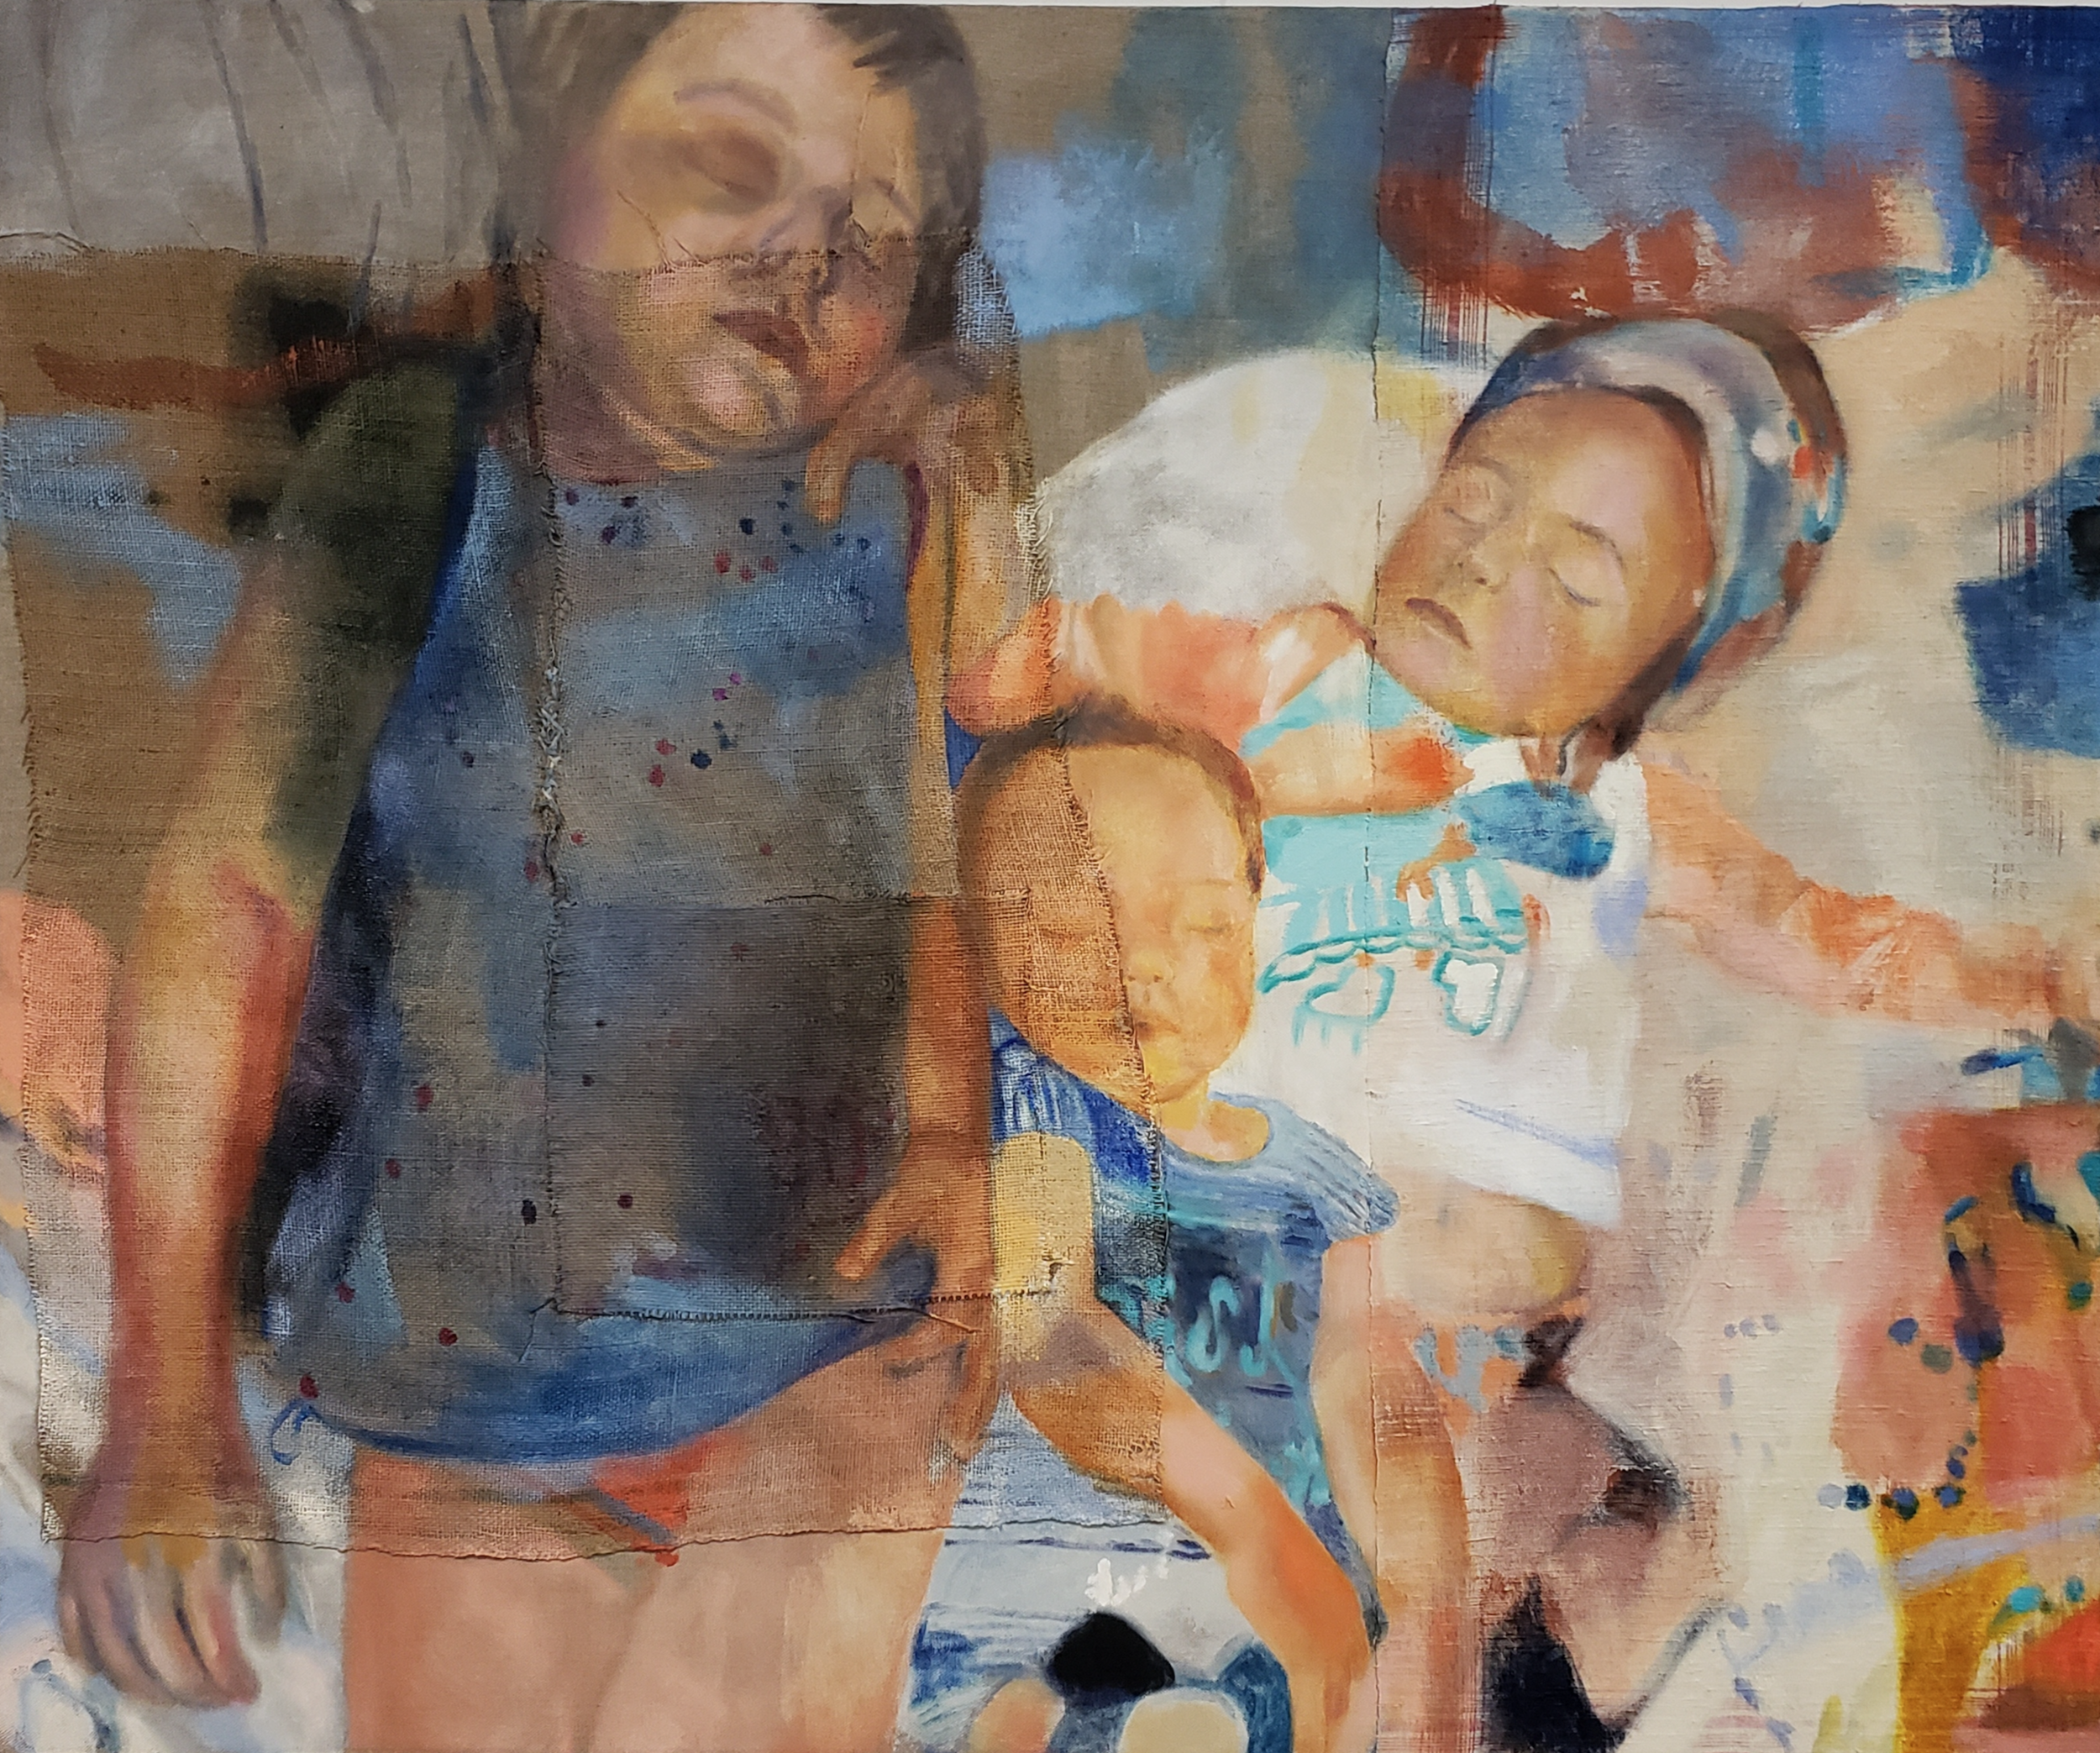 © Rebecca George, 'ARE CLOSER / THEY APPEAR' 2019 (60 x 50)